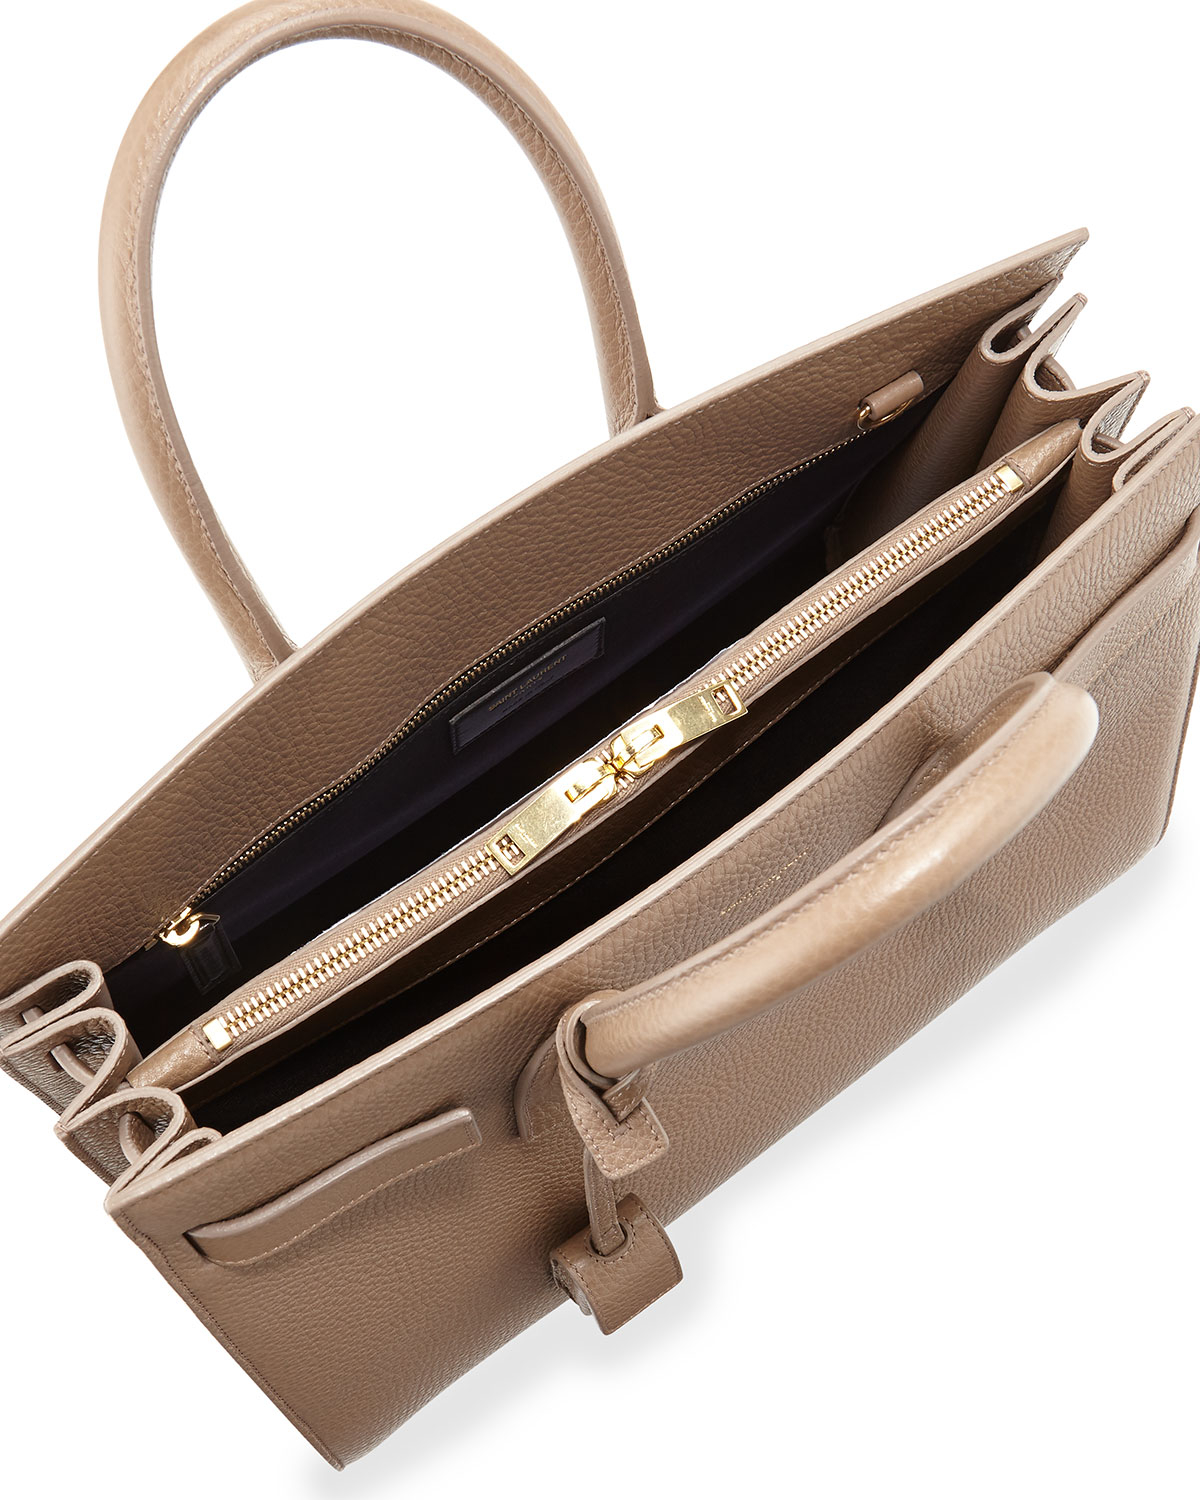 ysl bags uk online - small cabas rive gauche bag in beige grained leather